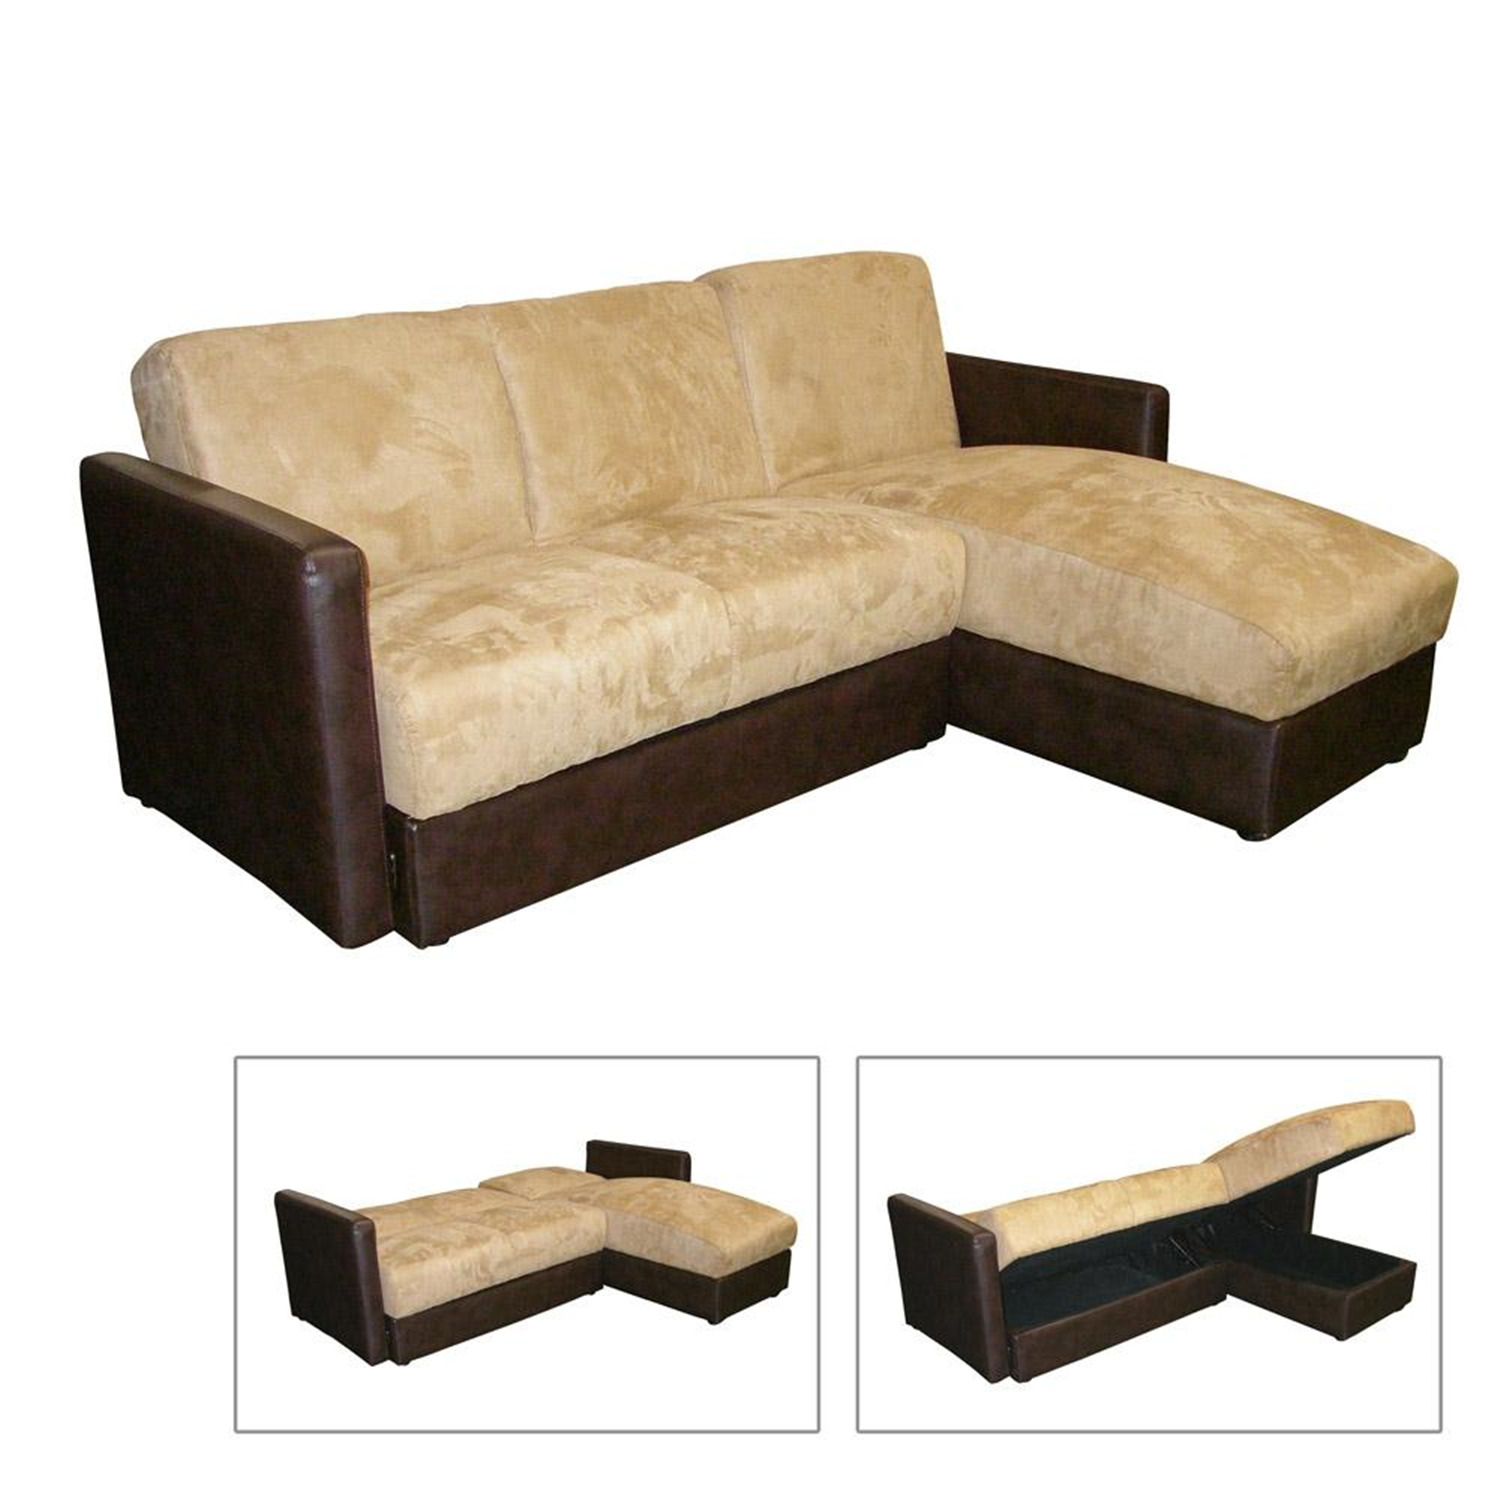 Ore international r8116cc sofa bed with storage Storage loveseat